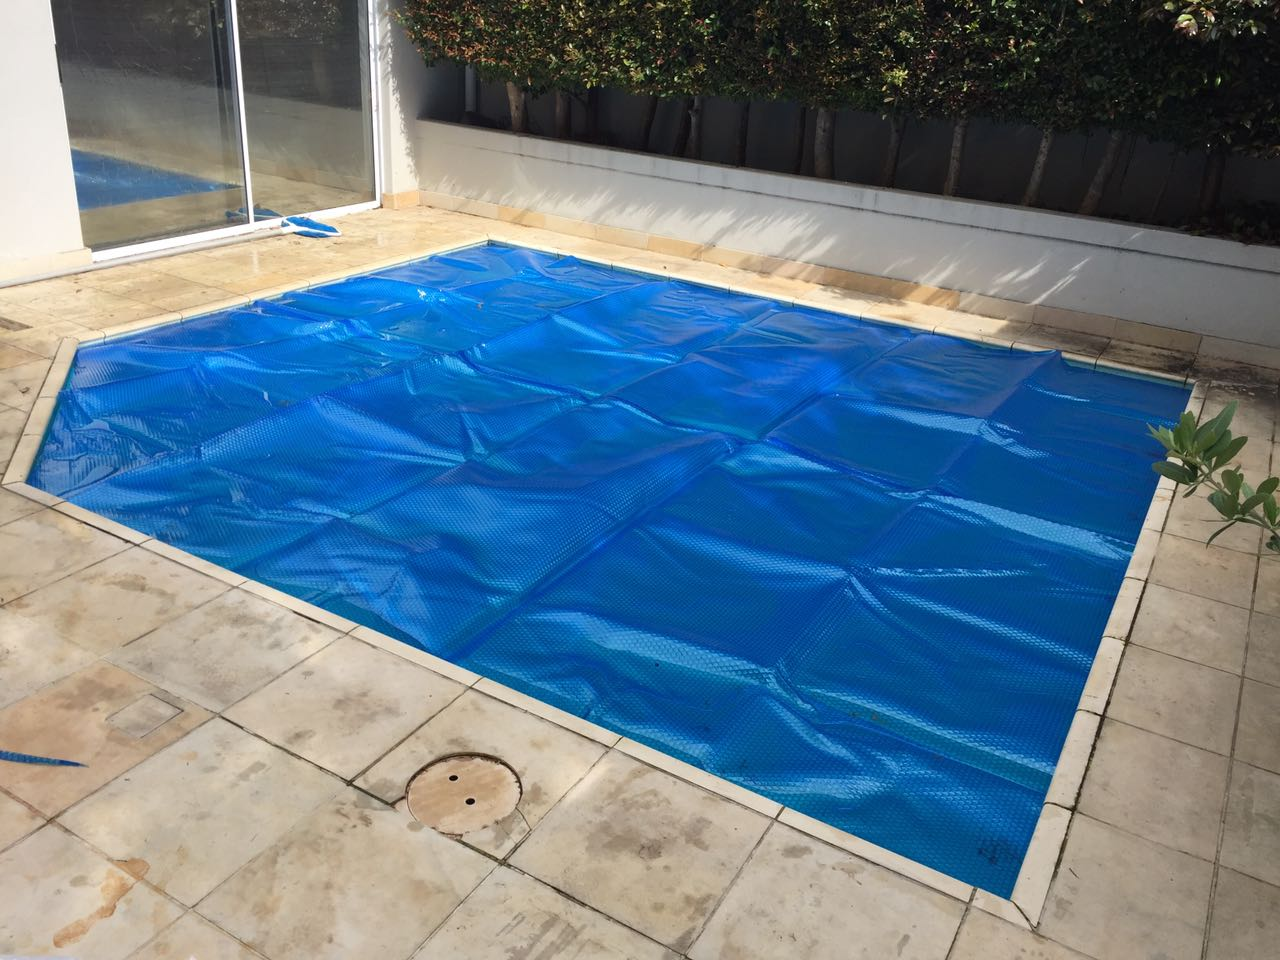 Bubble Wrap Pool Covers Cape Town Solar Pool Cover Solar Pool Blanket Swimming Pool Covers